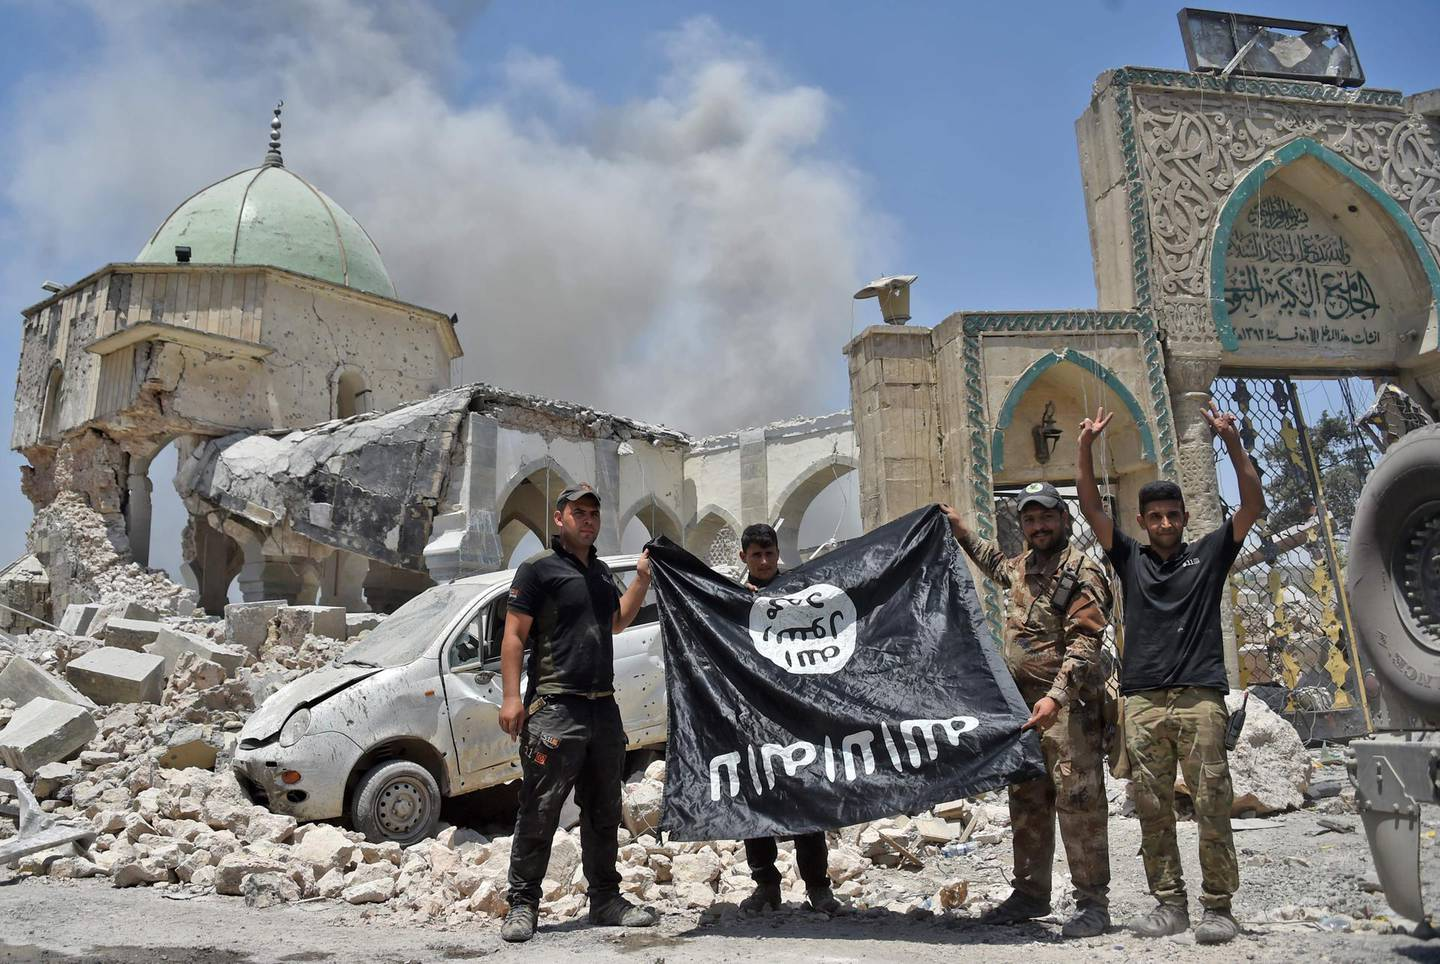 """(FILES) In this file photo taken on June 30, 2017, members of the Iraqi Counter-Terrorism Service (CTS) with a flag of the Islamic State held upside-down, outside the destroyed Al-Nuri Mosque in the Old City of Mosul, after the area was retaken from IS. Even as the last pockets of resistance in eastern Syria hold their ground, the Islamic State group is shapeshifting into a new, but no less dangerous, underground form, experts warn. Also known as ISIS, or the Islamic State in Iraq and Syria, it had long been ready to cede the territory it once held in its self-styled """"caliphate,"""" and has already begun the switch to a more clandestine role, closer to its roots.  / AFP / FADEL SENNA / TO GO WITH AFP STORY by Michel MOUTOT, """"Islamic State not defeated, just transforming, experts say"""""""